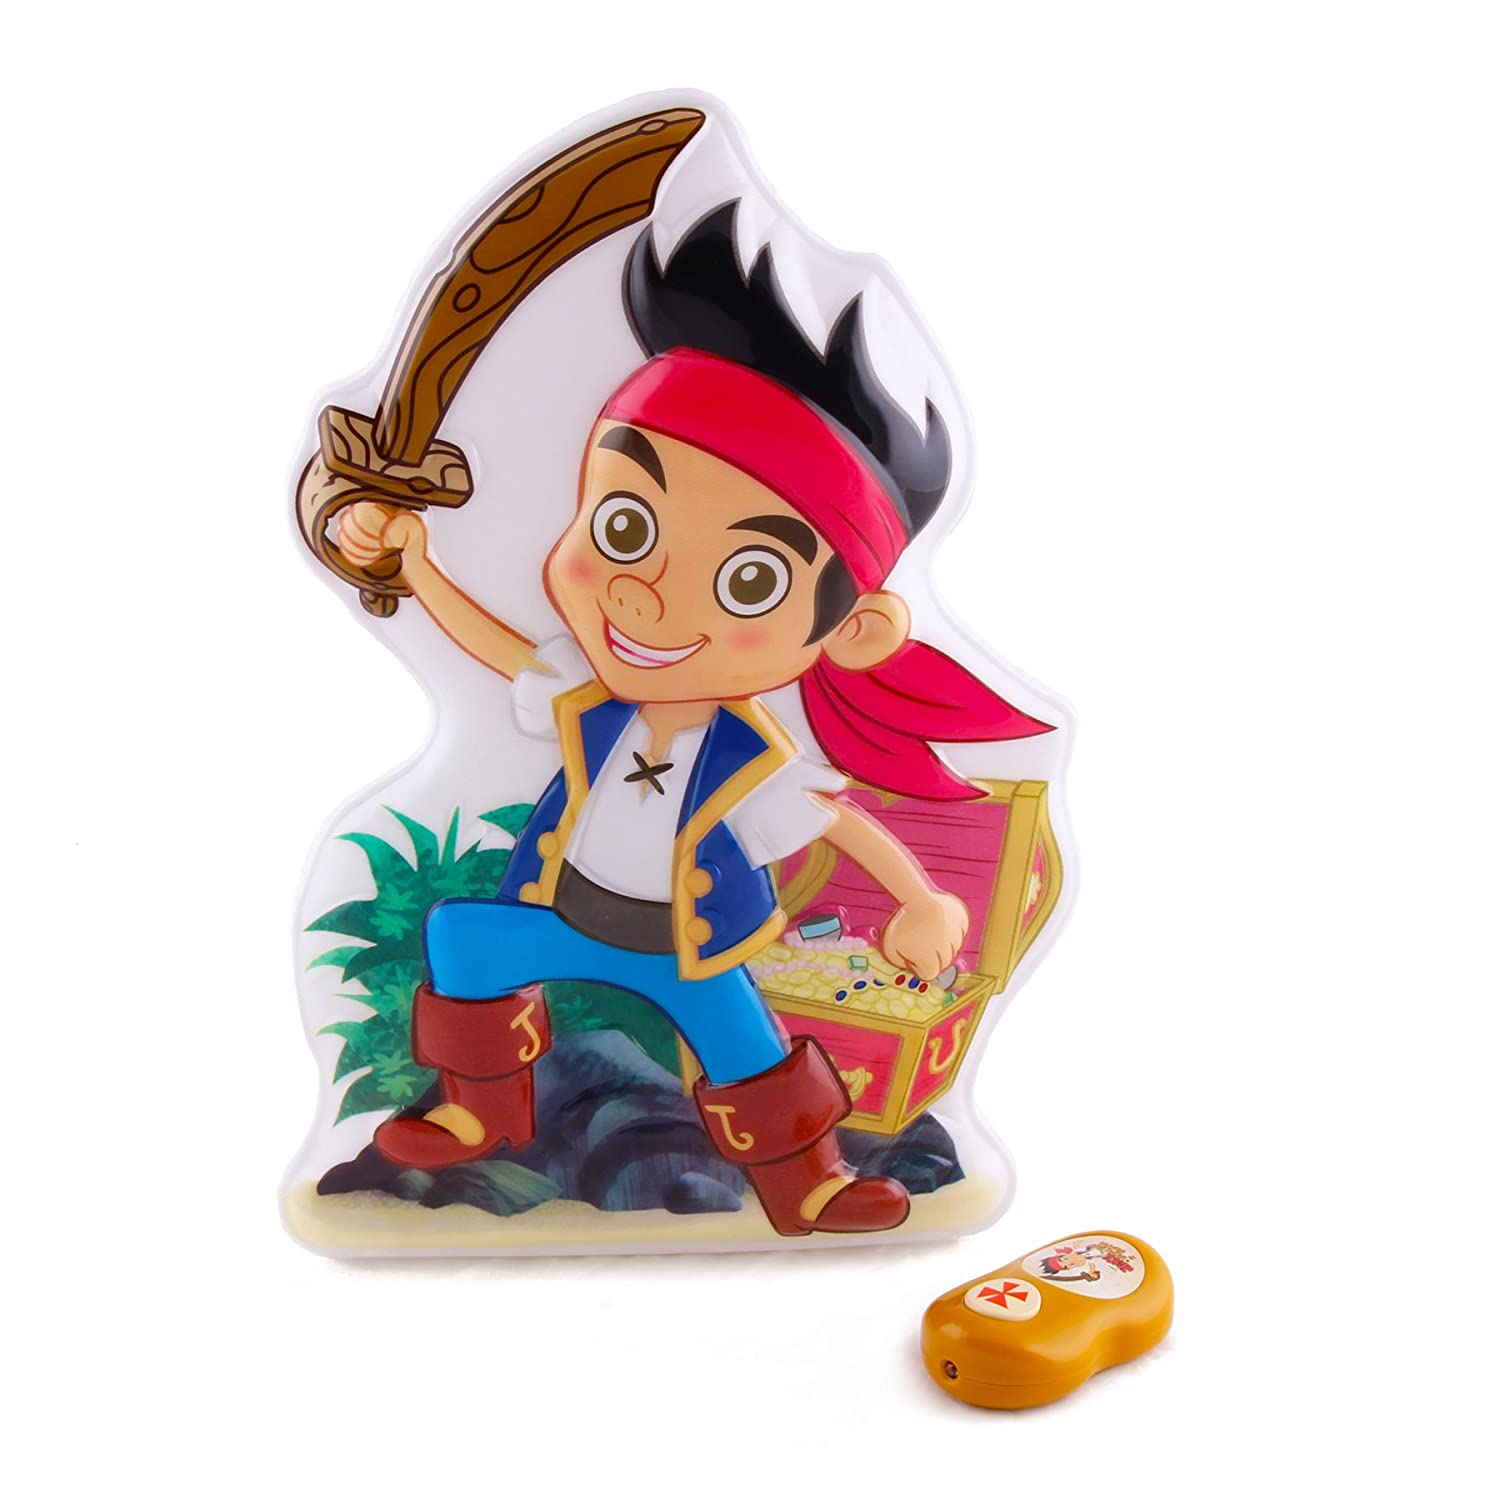 Jake And The Never Land Pirates Decor Totally Kids Totally Bedrooms Kids Bedroom Ideas